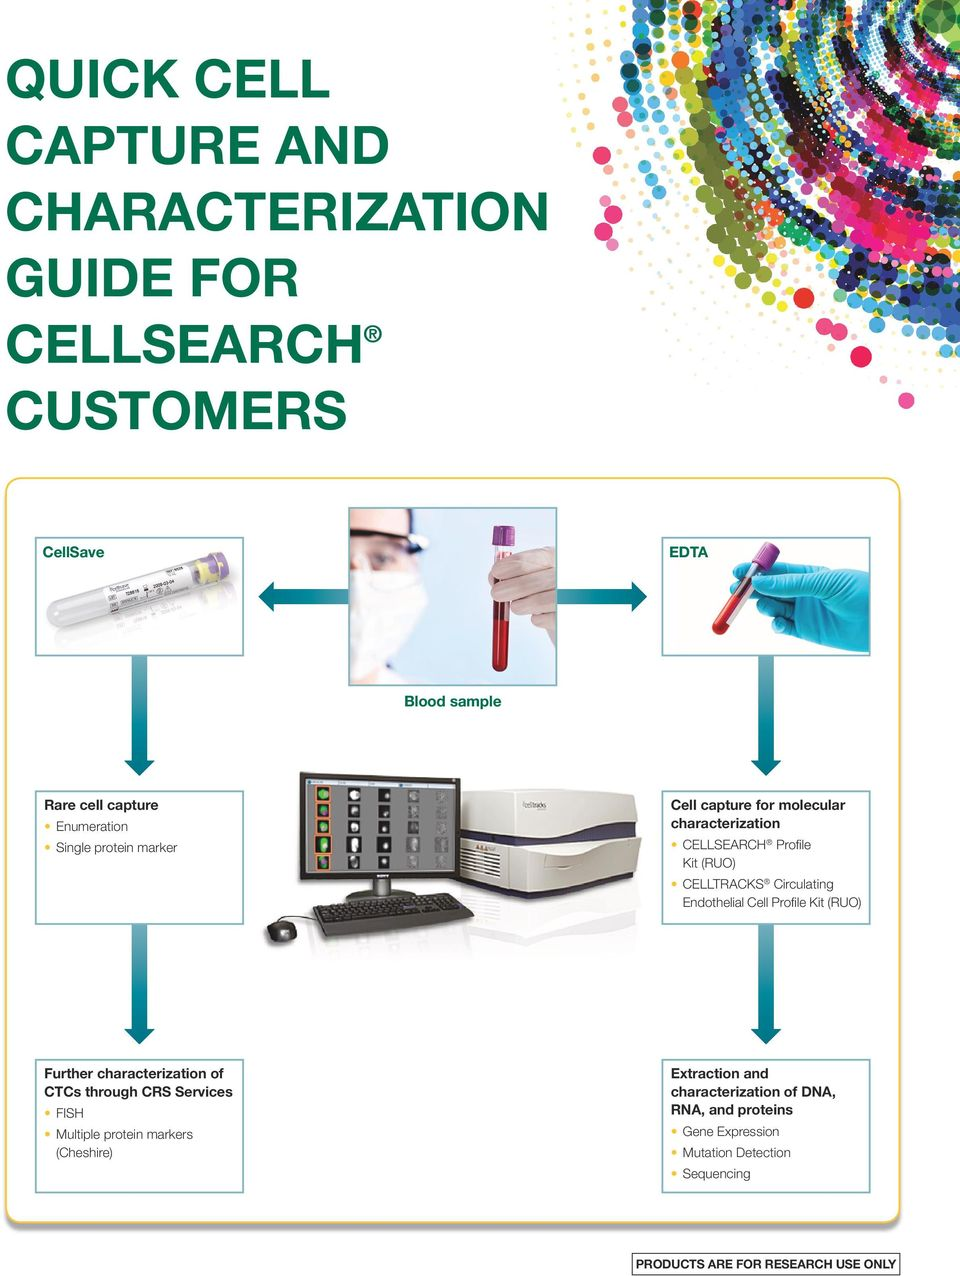 Circulating Endothelial Cell Profile Kit (RUO) Further characterization of CTCs through CRS Services FISH Multiple